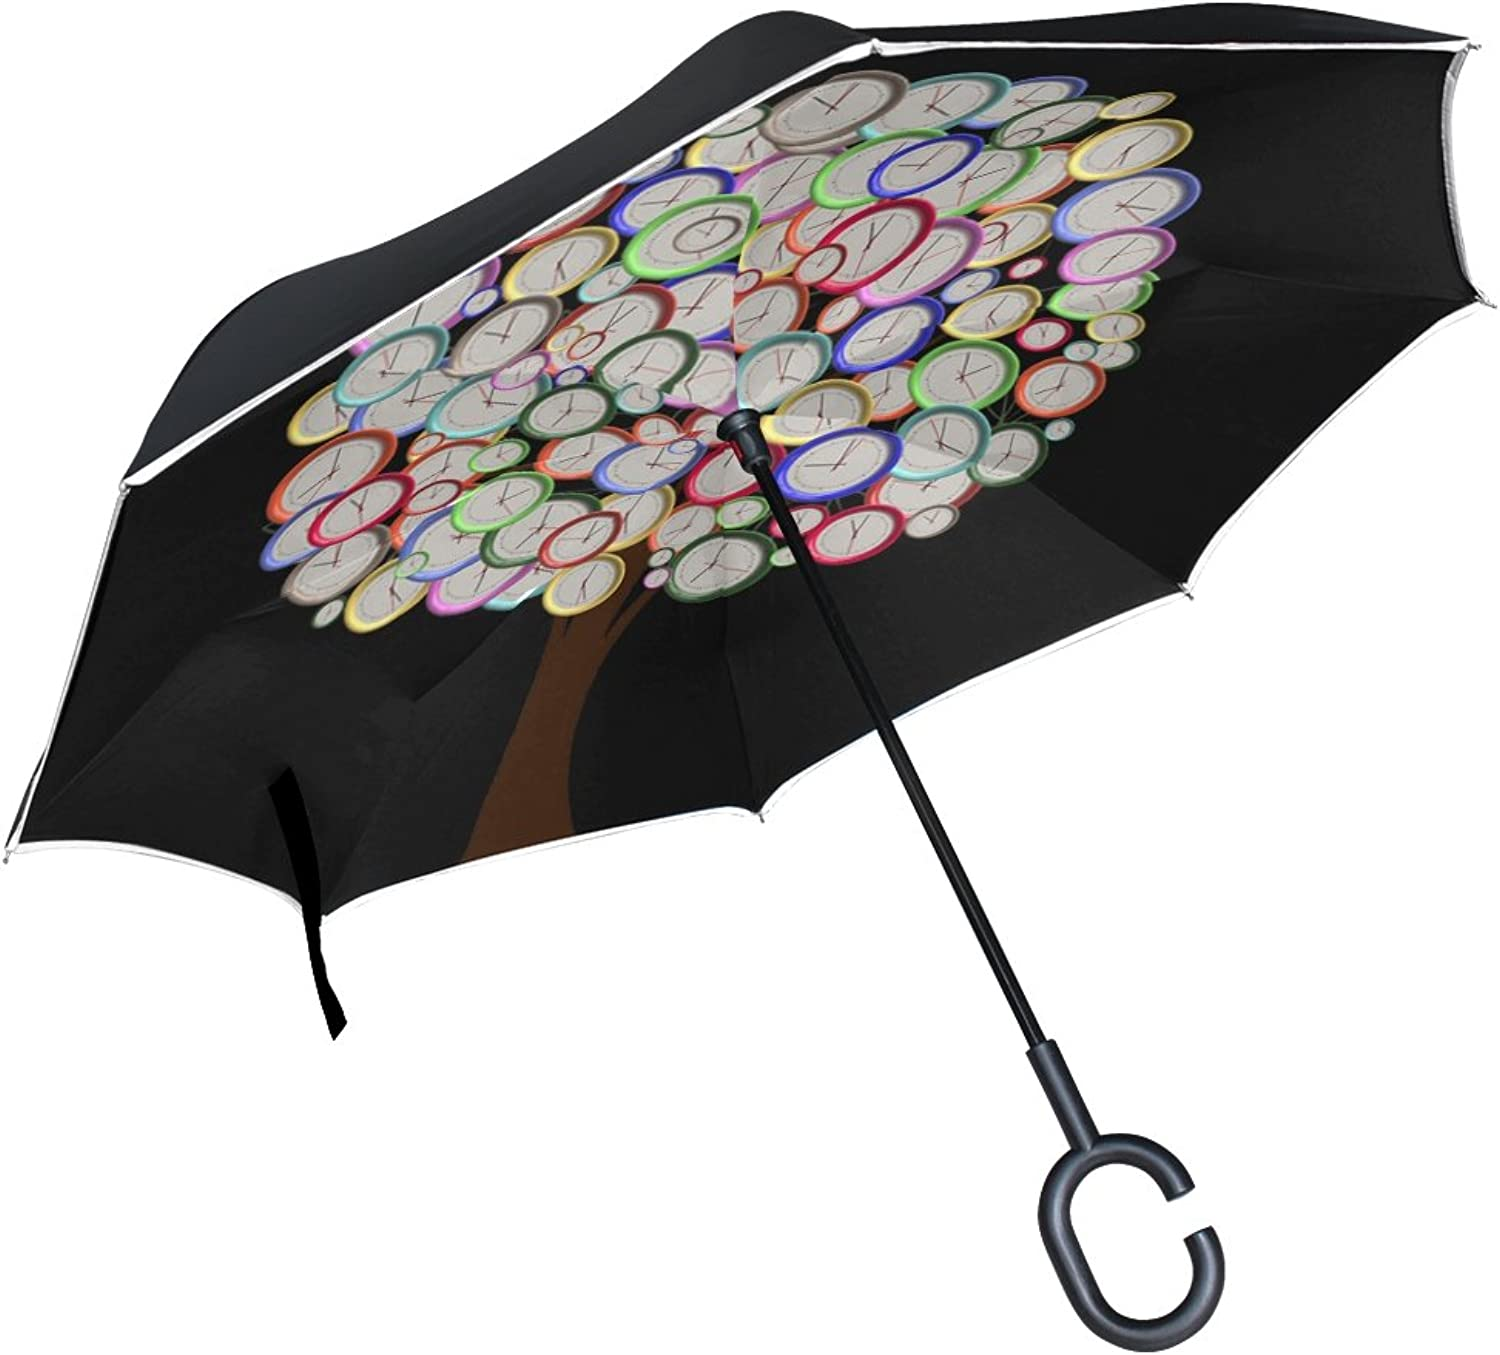 Double Layer Ingreened Tree Watches Time Hours Minutes Seconds Umbrellas Reverse Folding Umbrella Windproof Uv Predection Big Straight Umbrella for Car Rain Outdoor with CShaped Handle